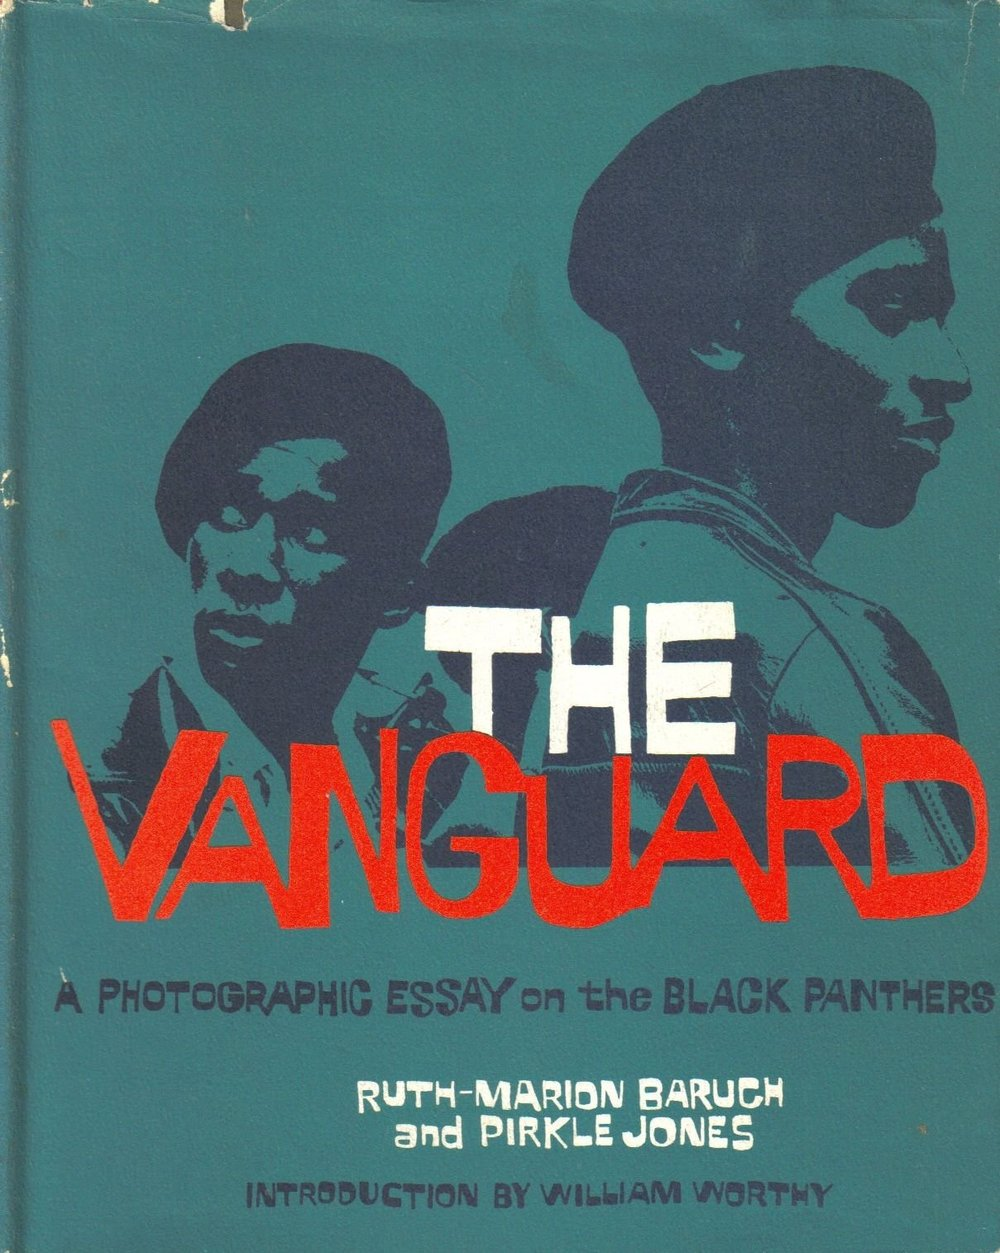 shihlun :   Ruth-Marion Baruch and Pirkle Jones,  The Vanguard: A Photographic Essay on the Black Panthers , 1970.   In 1968, the wife and husband team of photographers Ruth-Marion Baruch and Pirkle Jones, who were interested in the counterculture movements of the 1960s in California, produced an extensive reportage on the Black Panthers for the Young Museum in San Francisco. Their aim was to promote understanding of the movement and counteract its negative social  perception, fostered by the media. Their series showed an intimacy with  the Black Panthers, beyond the military and gang connotations of their  uniform, strategically adopted by the Party to counter the victimisation  of the community and promote empowerment though an attractive  self-image. Baruch and Jones revealed the under-represented side of the  Panthers' activity, their soup kitchens and social welfare services, as  well as how they were repressed and attacked.